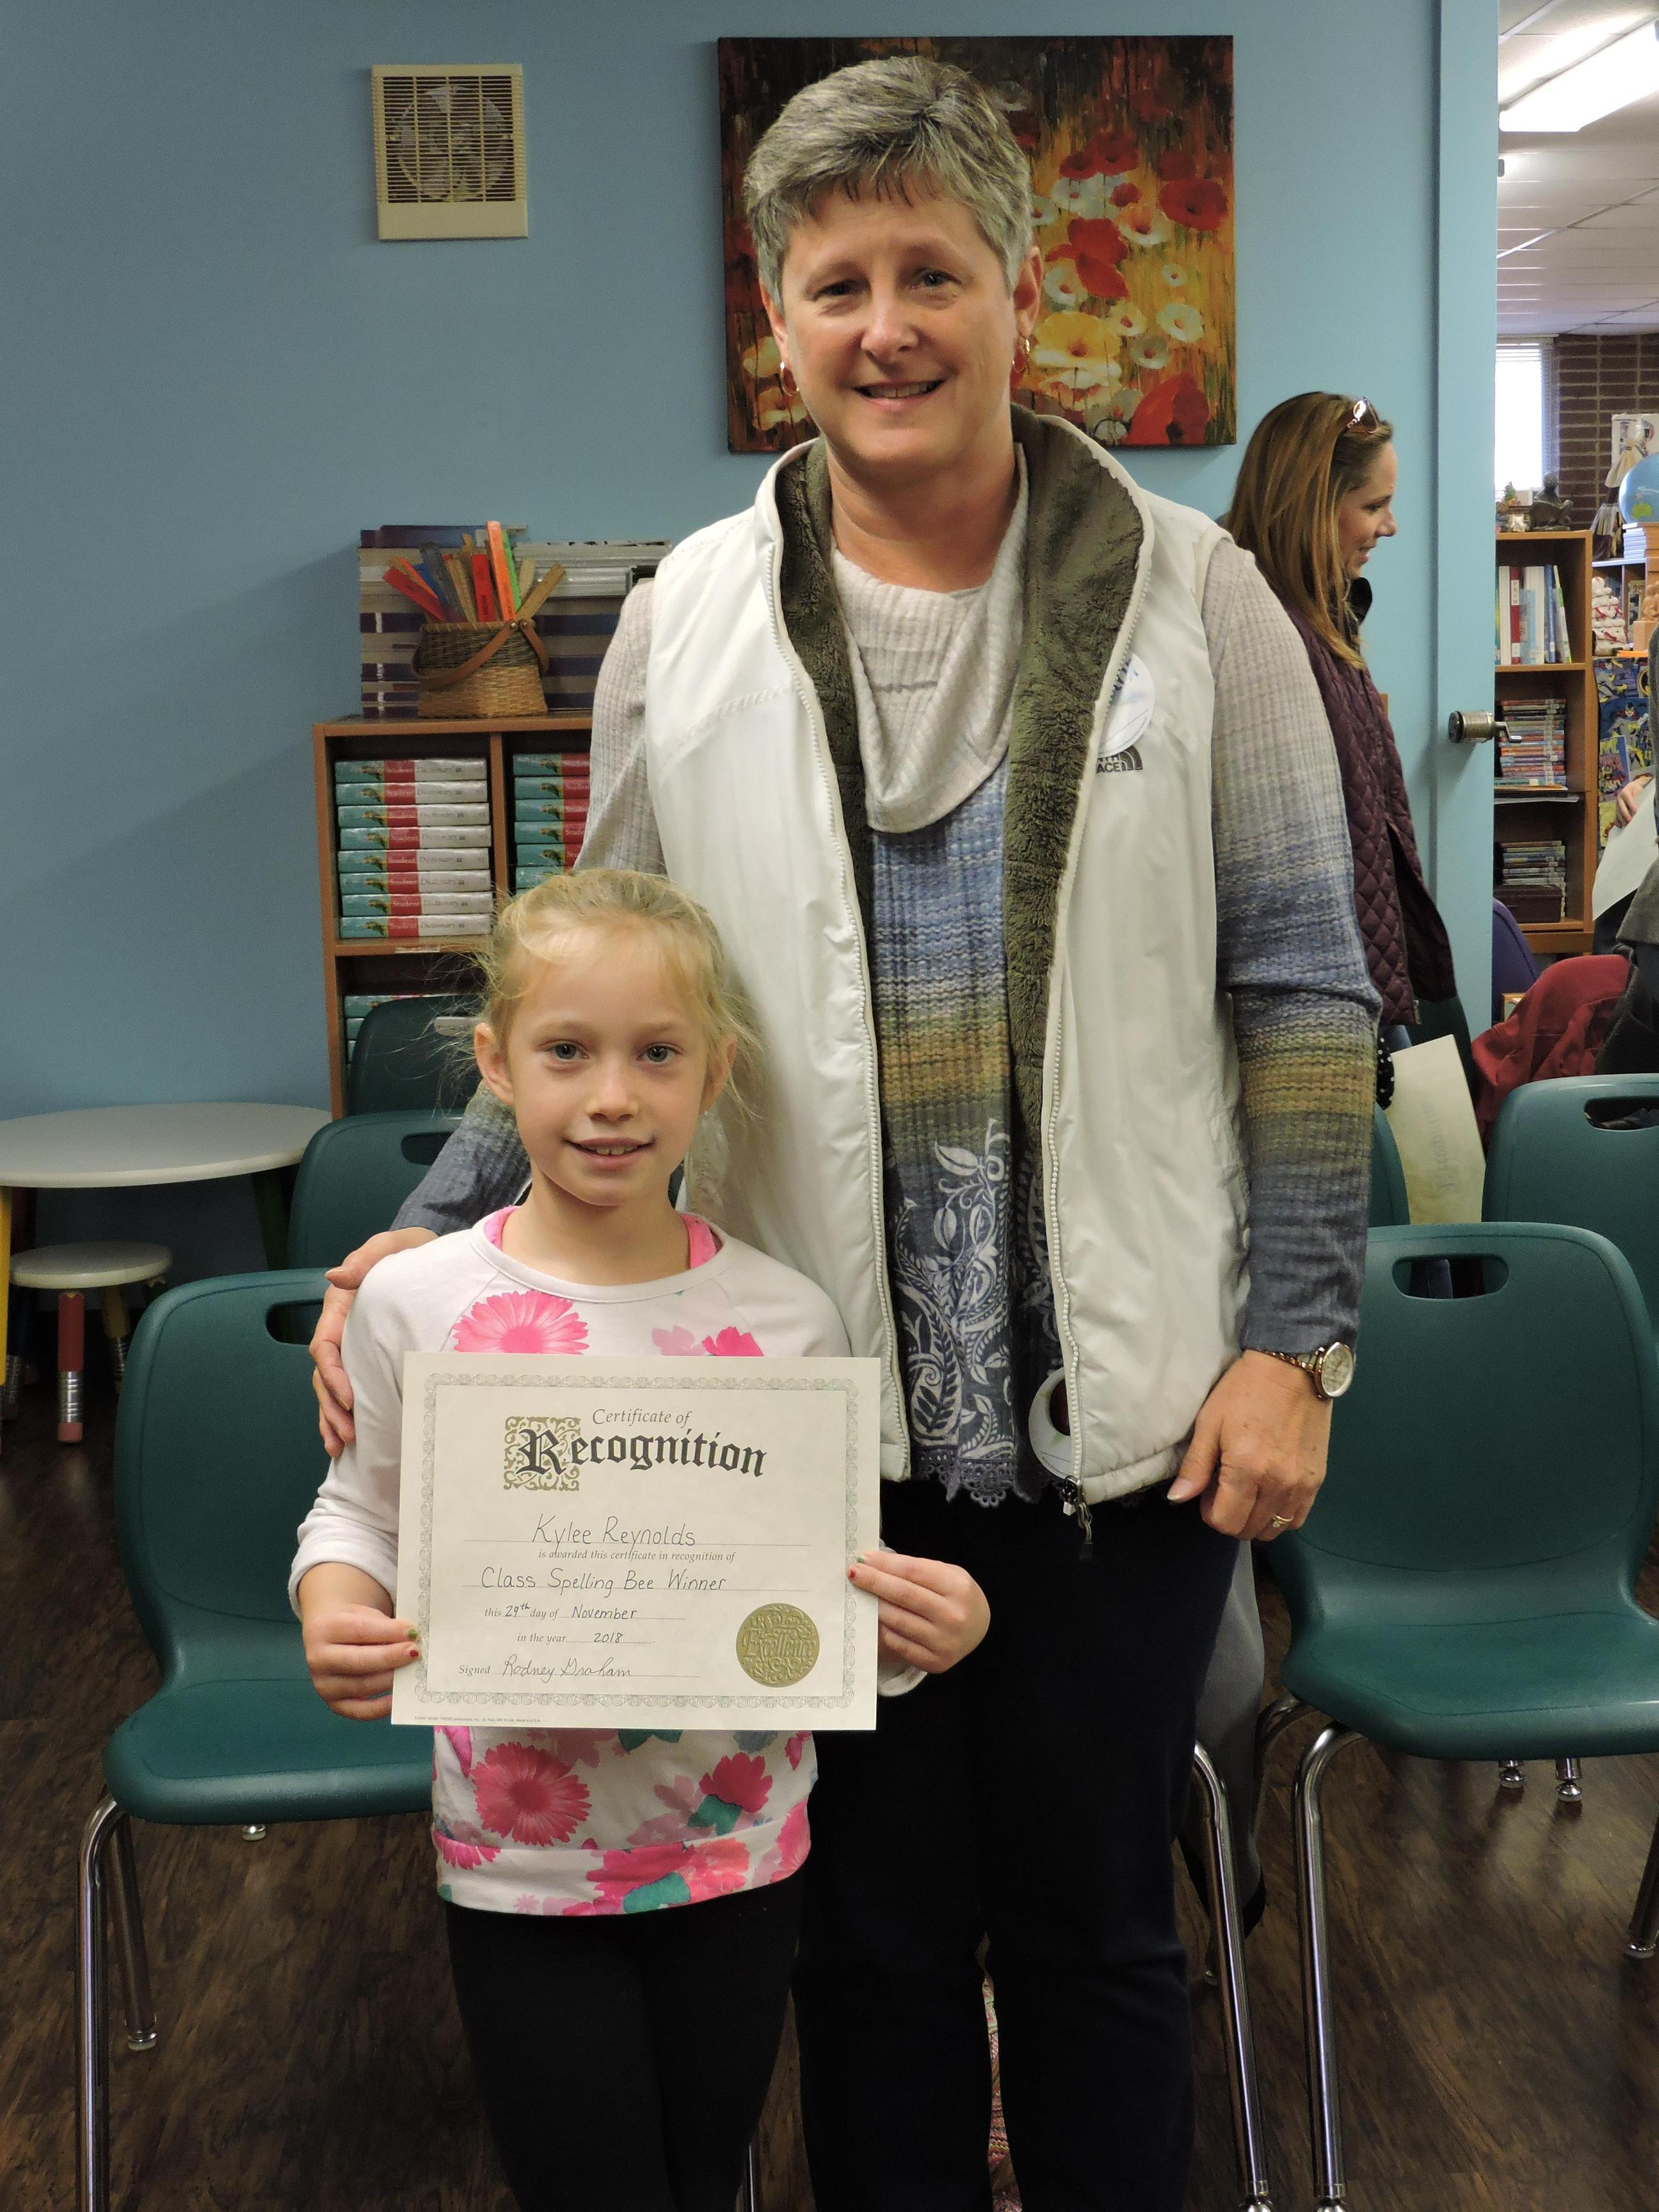 Spelling Bee Participant with grandparent